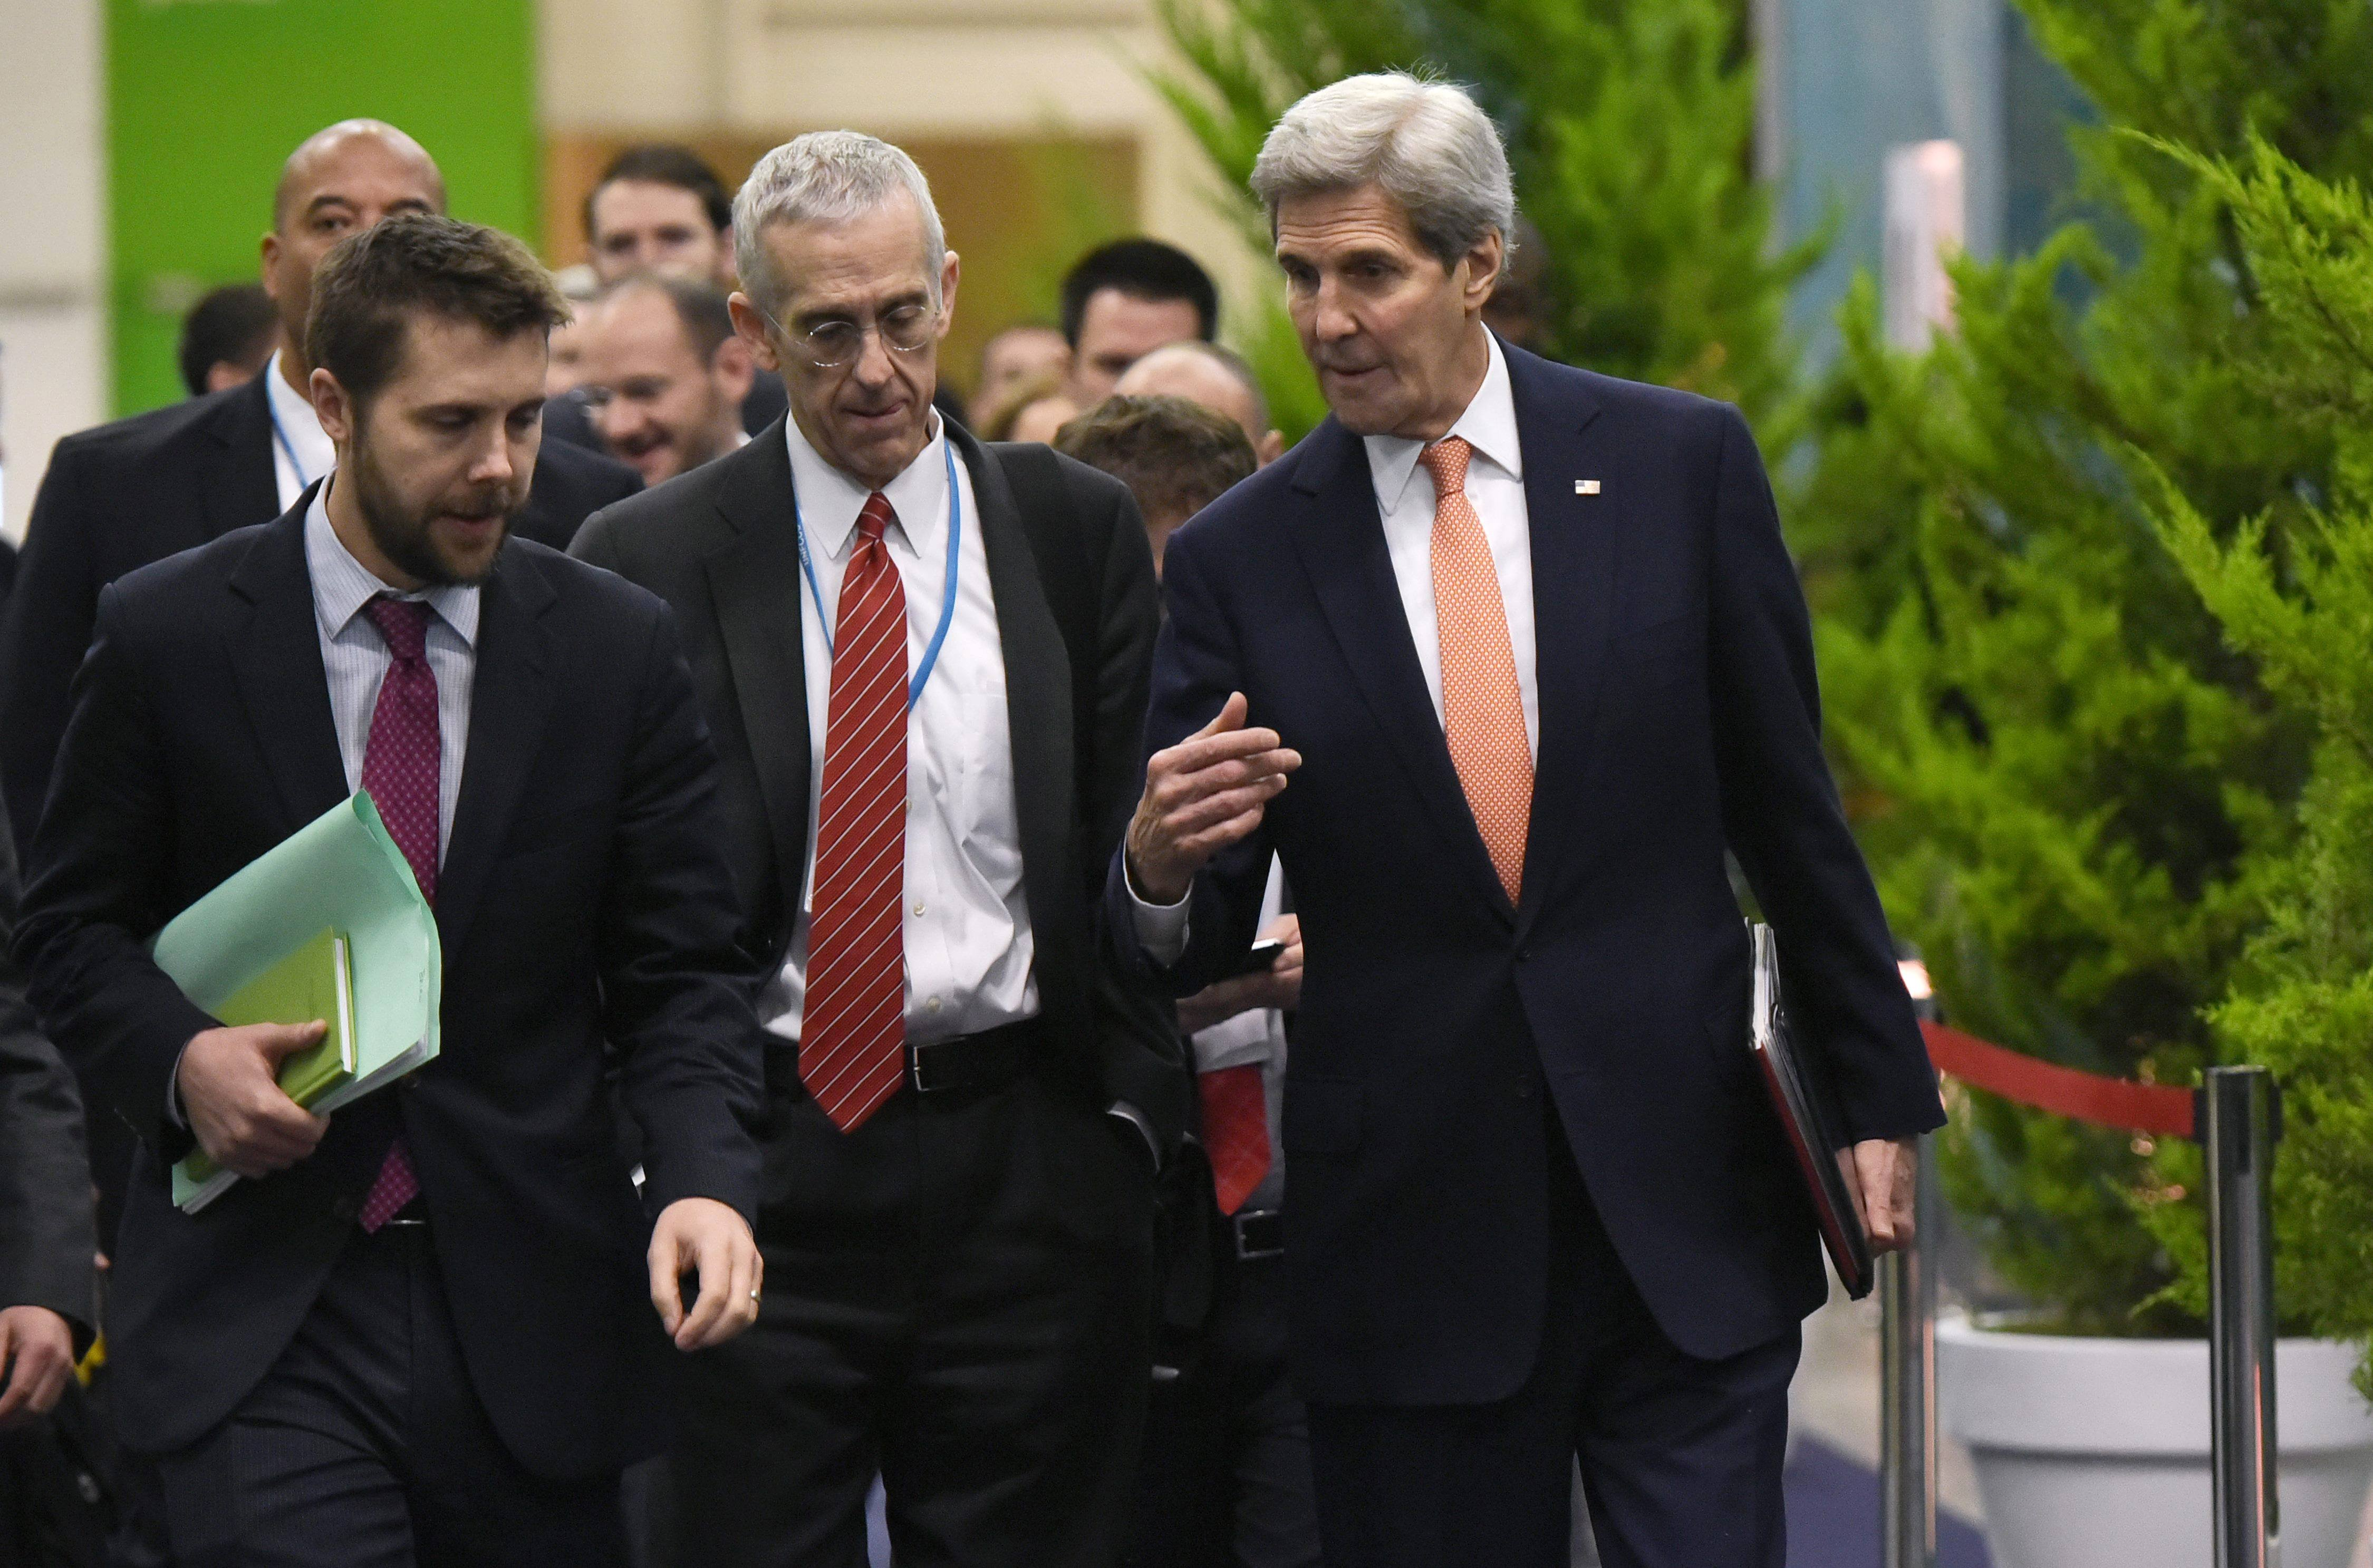 US Secretary of State John Kerry, right, walks with White House senior advisor Brian Deese, left, and US Special Envoy for Climate Change Todd Stern, center, to attend a meeting with French Foreign Minister during the COP 21 United Nations conference on climate change at Le Bourget, on the outskirts of Paris, on Dec. 10, 2015.